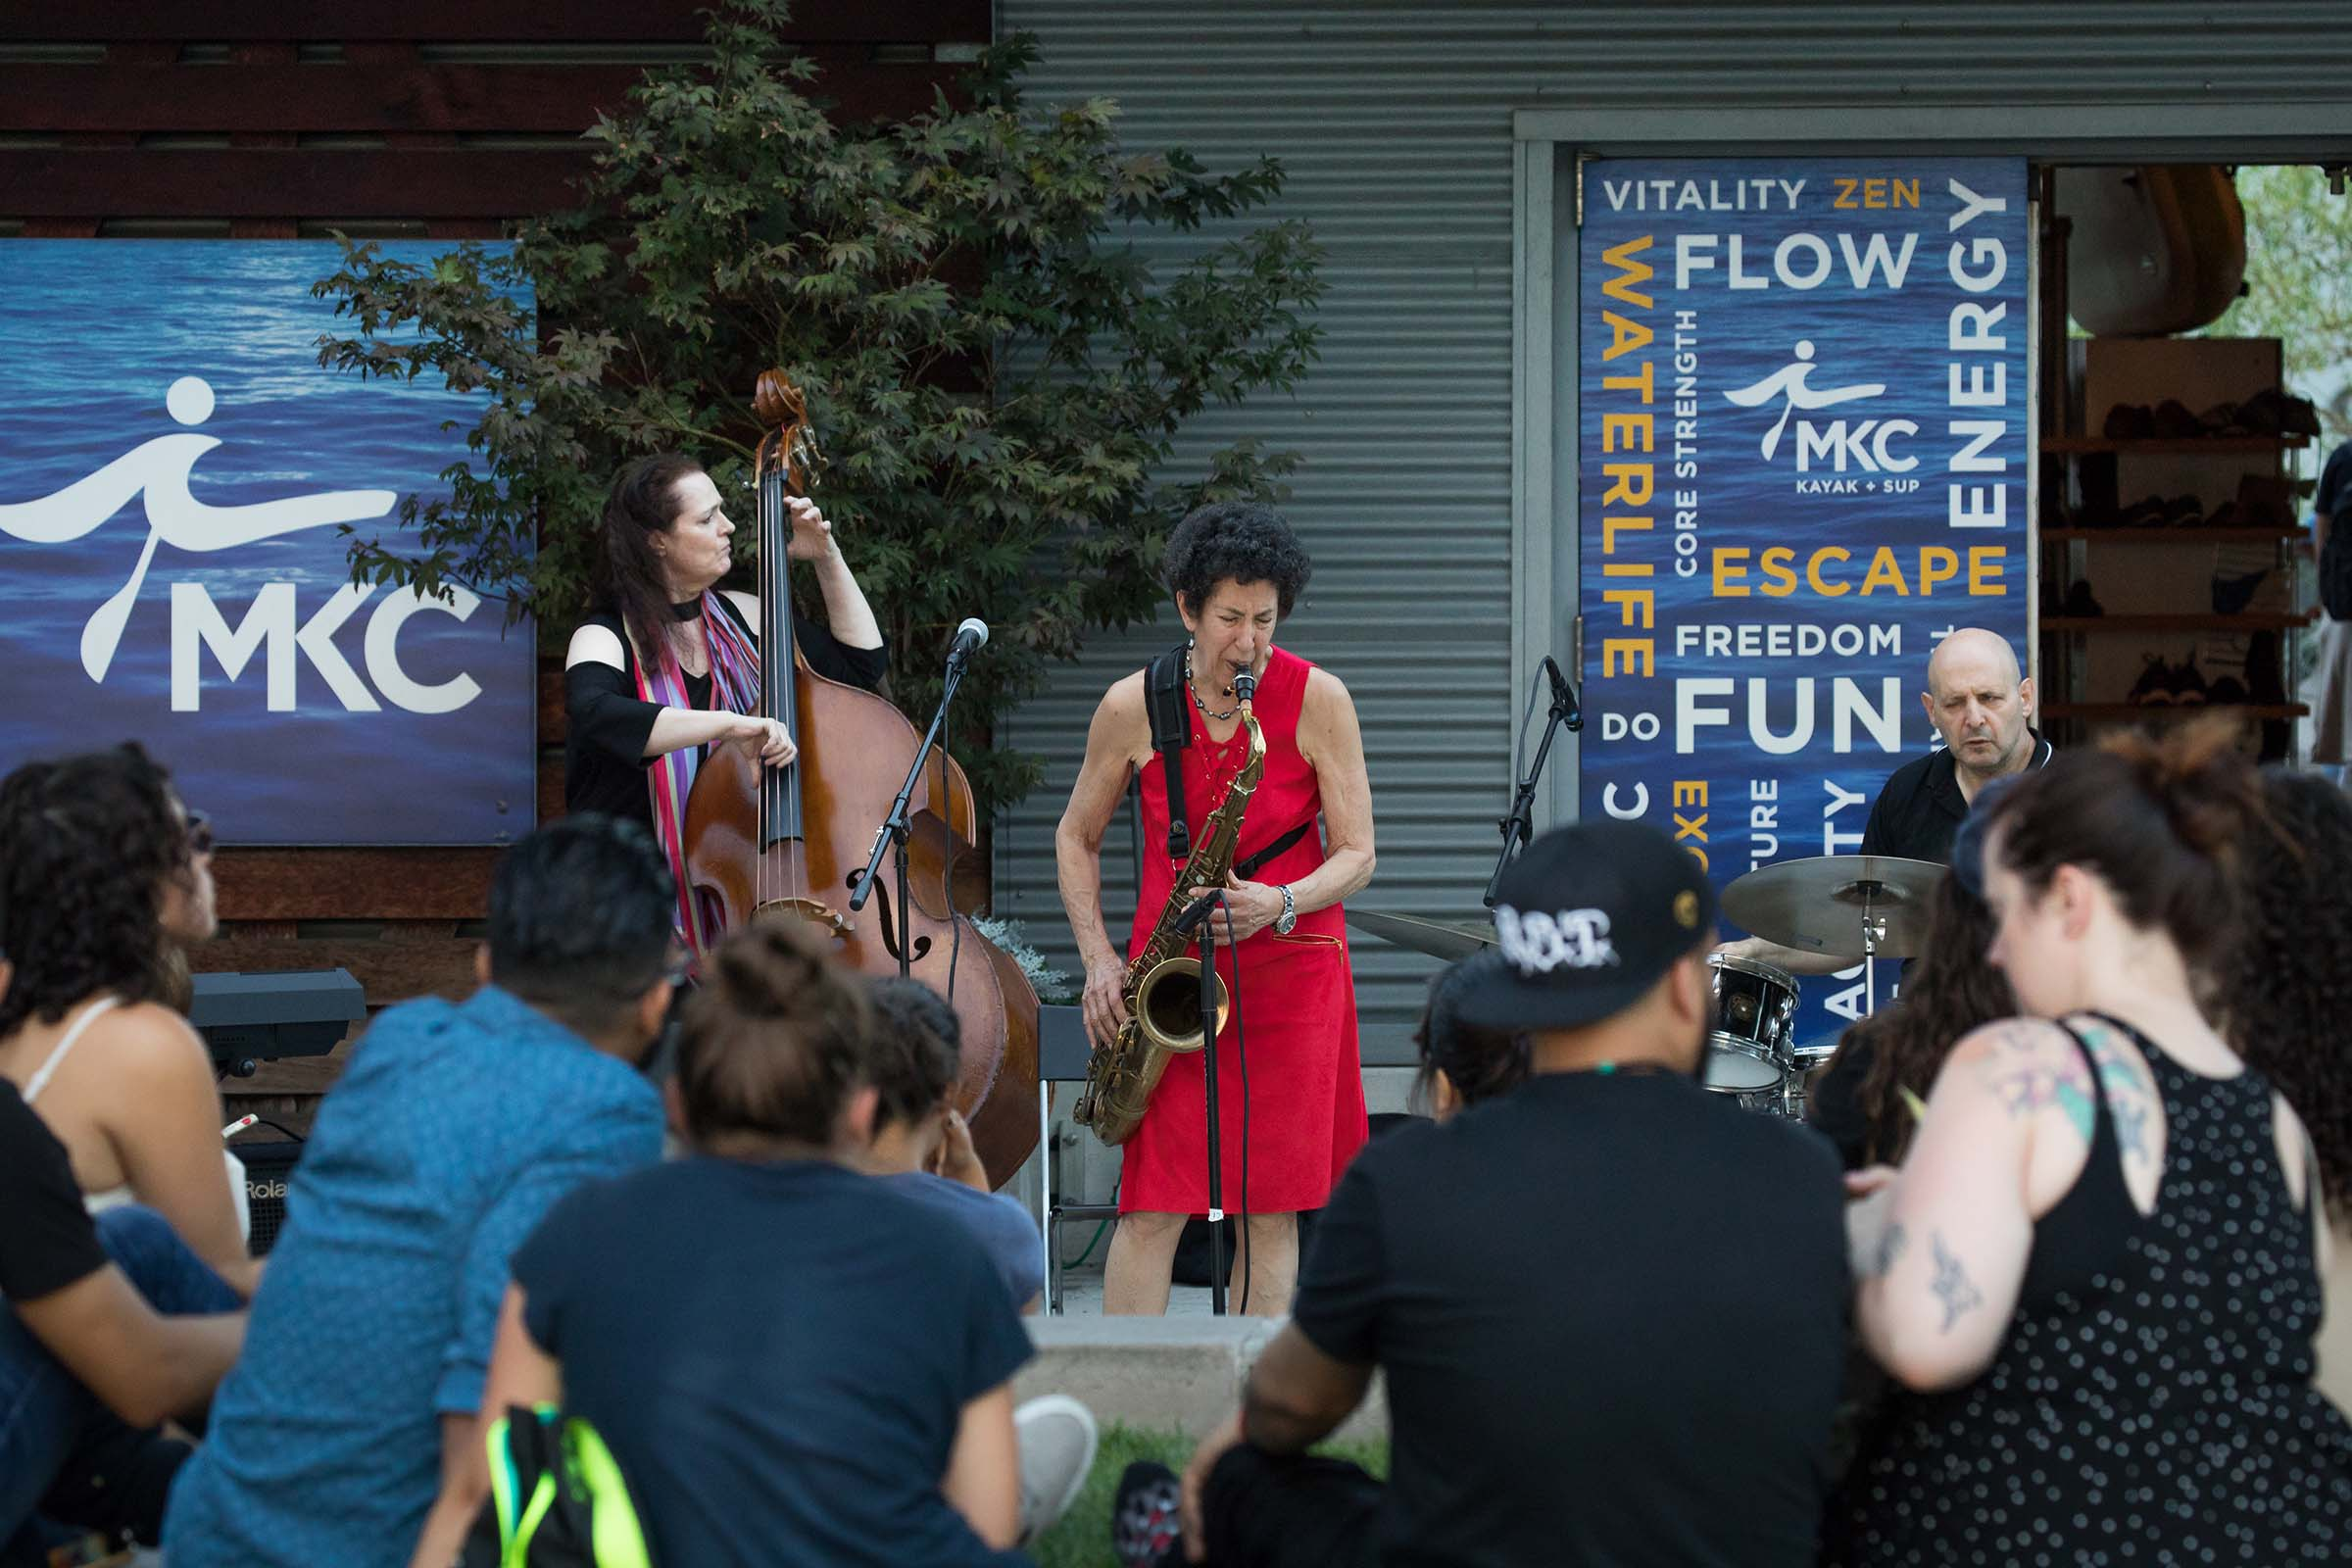 A lady in a red dress swinging with her tenor sax